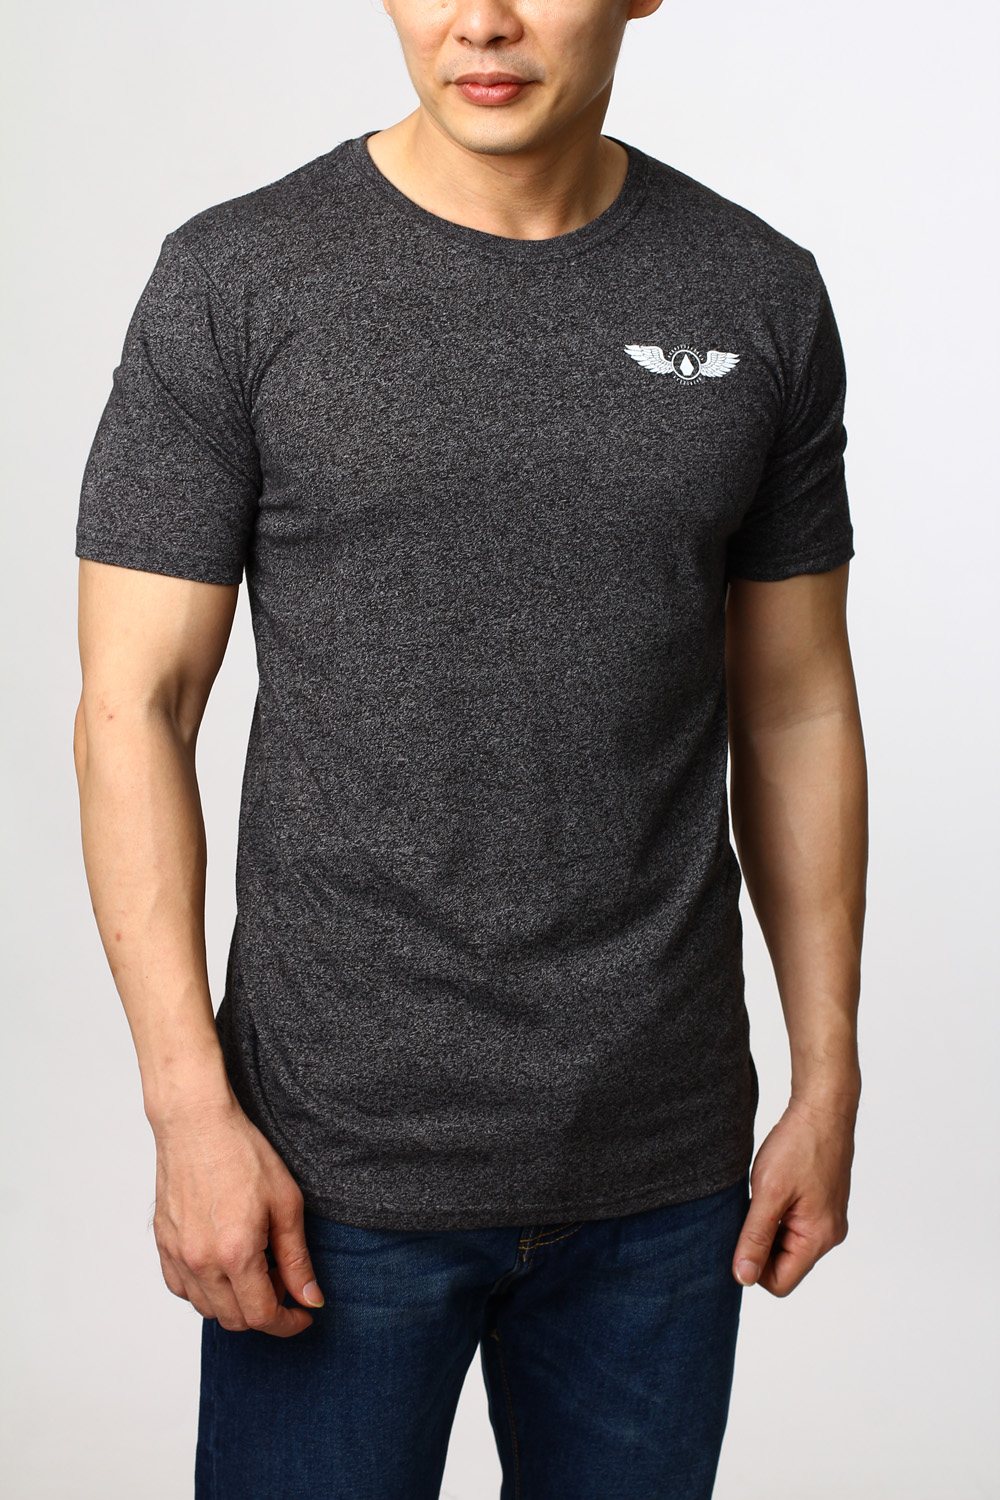 TO VOLCOM 75 uk S,M,L,XL